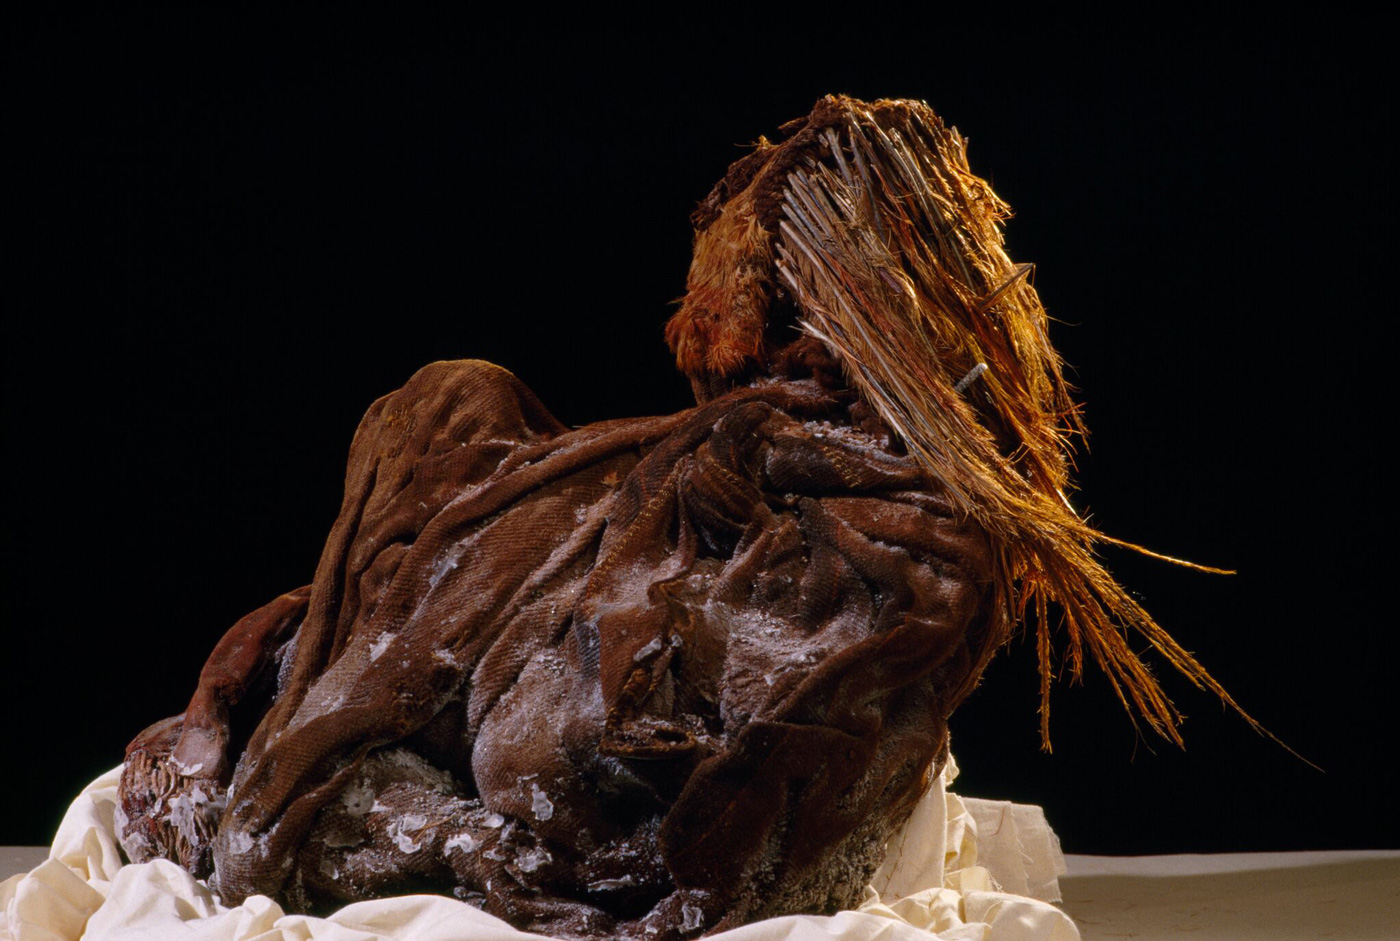 View of the mummy of an eight-year-old Inca girl found on Nevado Ampato. The young child was sacrificed and buried with a variety of offerings to the mountain gods.